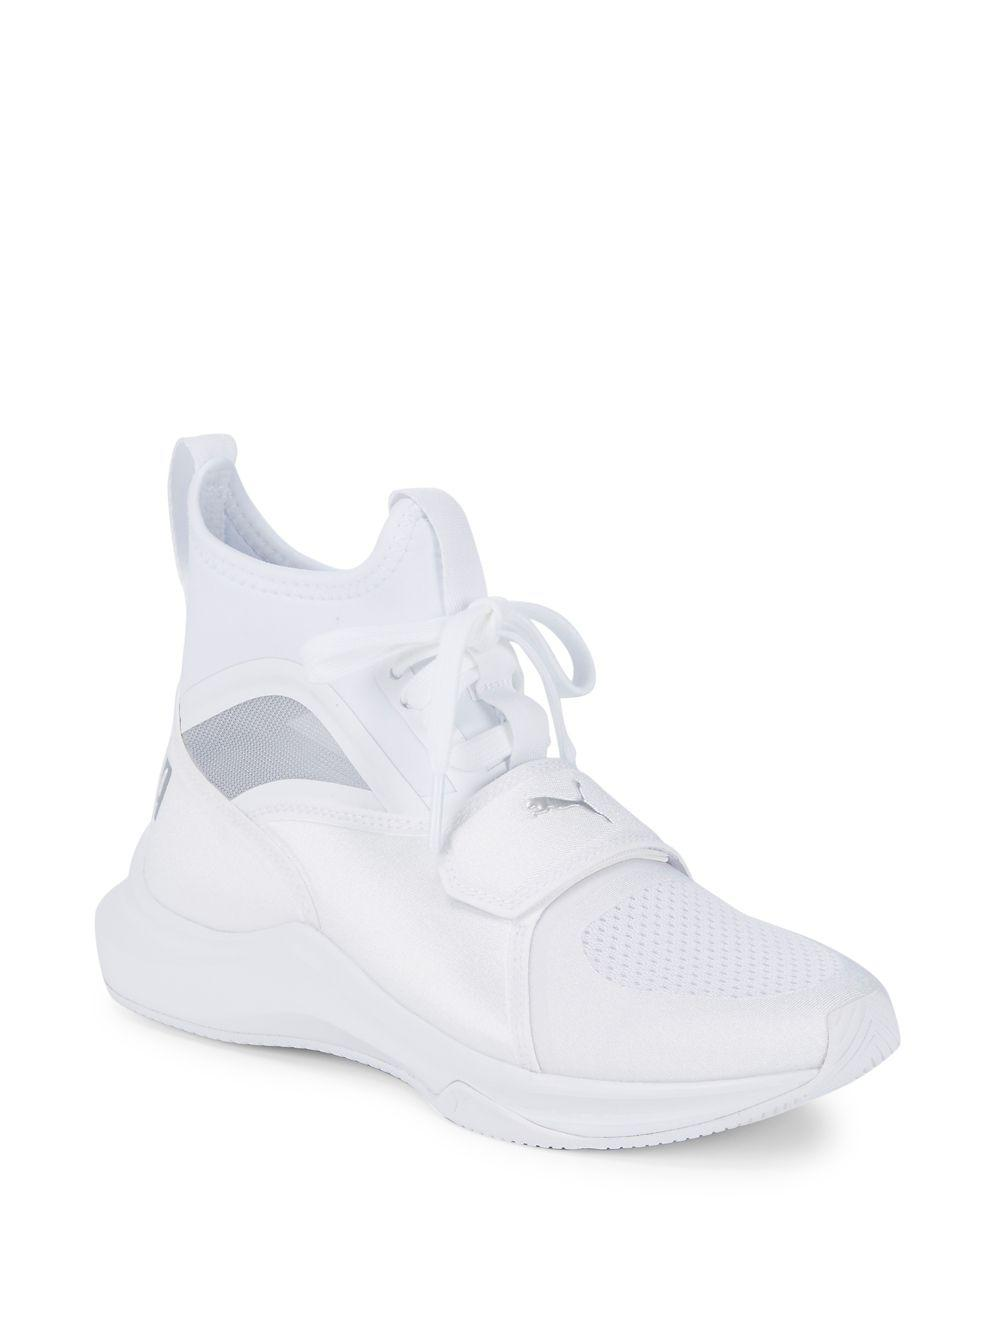 06a77a0c2ec4d0 Lyst - Puma Phenom Training Sneakers in White